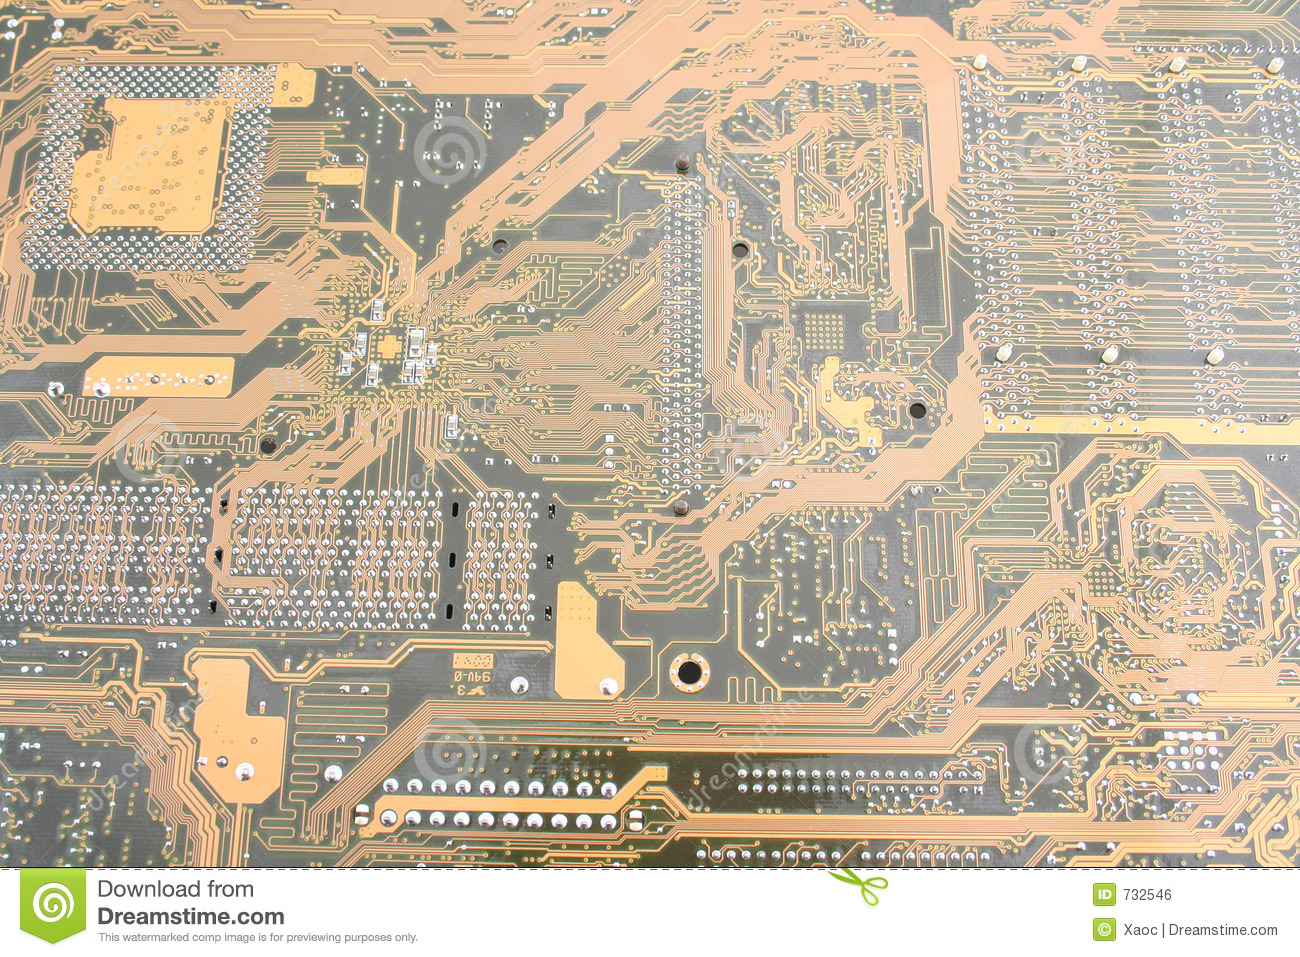 Printed Circuit Board Royalty Free Stock Photos Image 28246598 732546